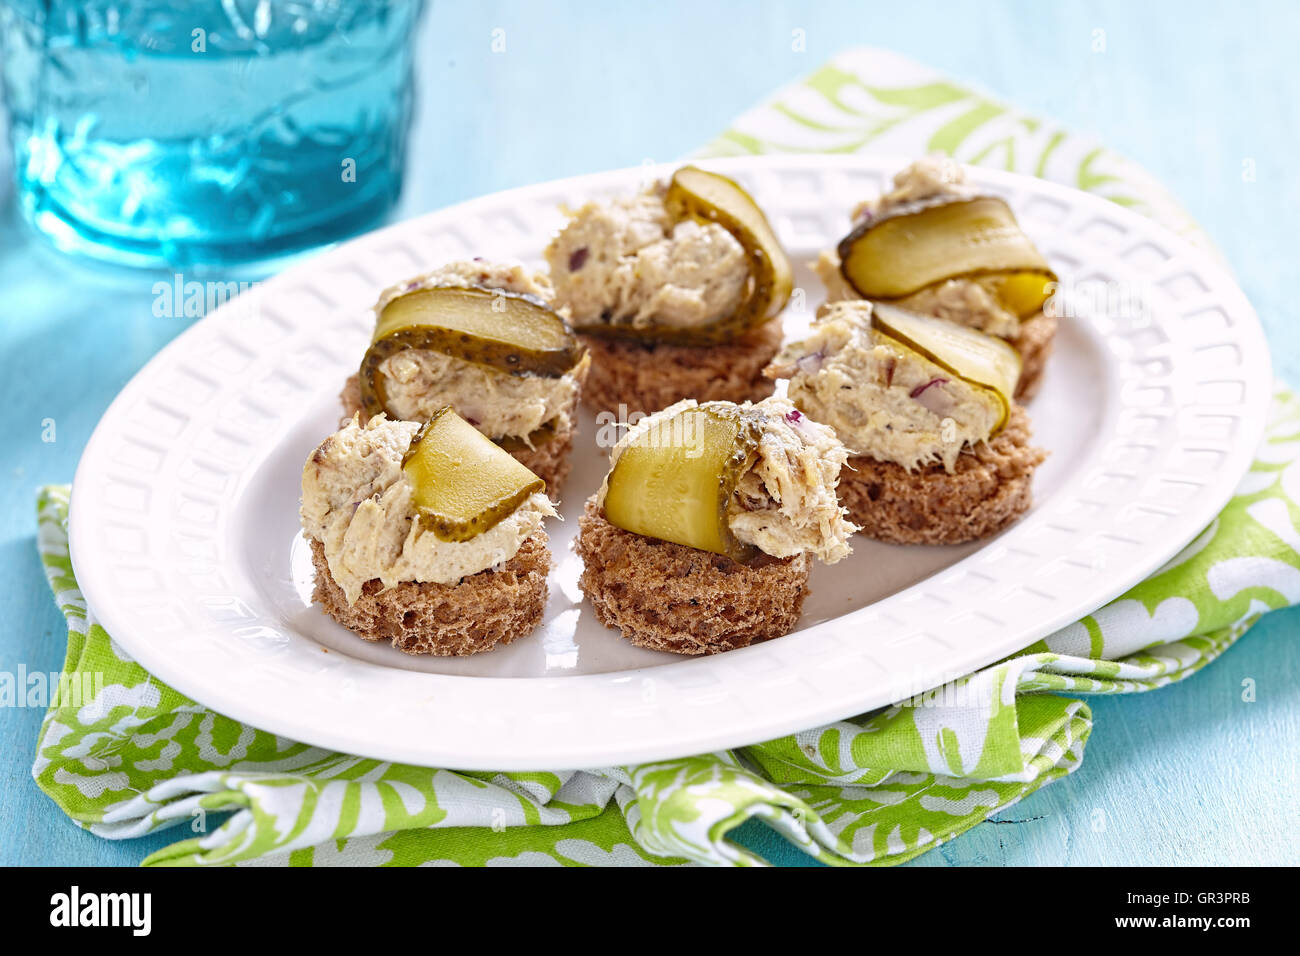 Canapes with fish pate and pickle. Party food - Stock Image